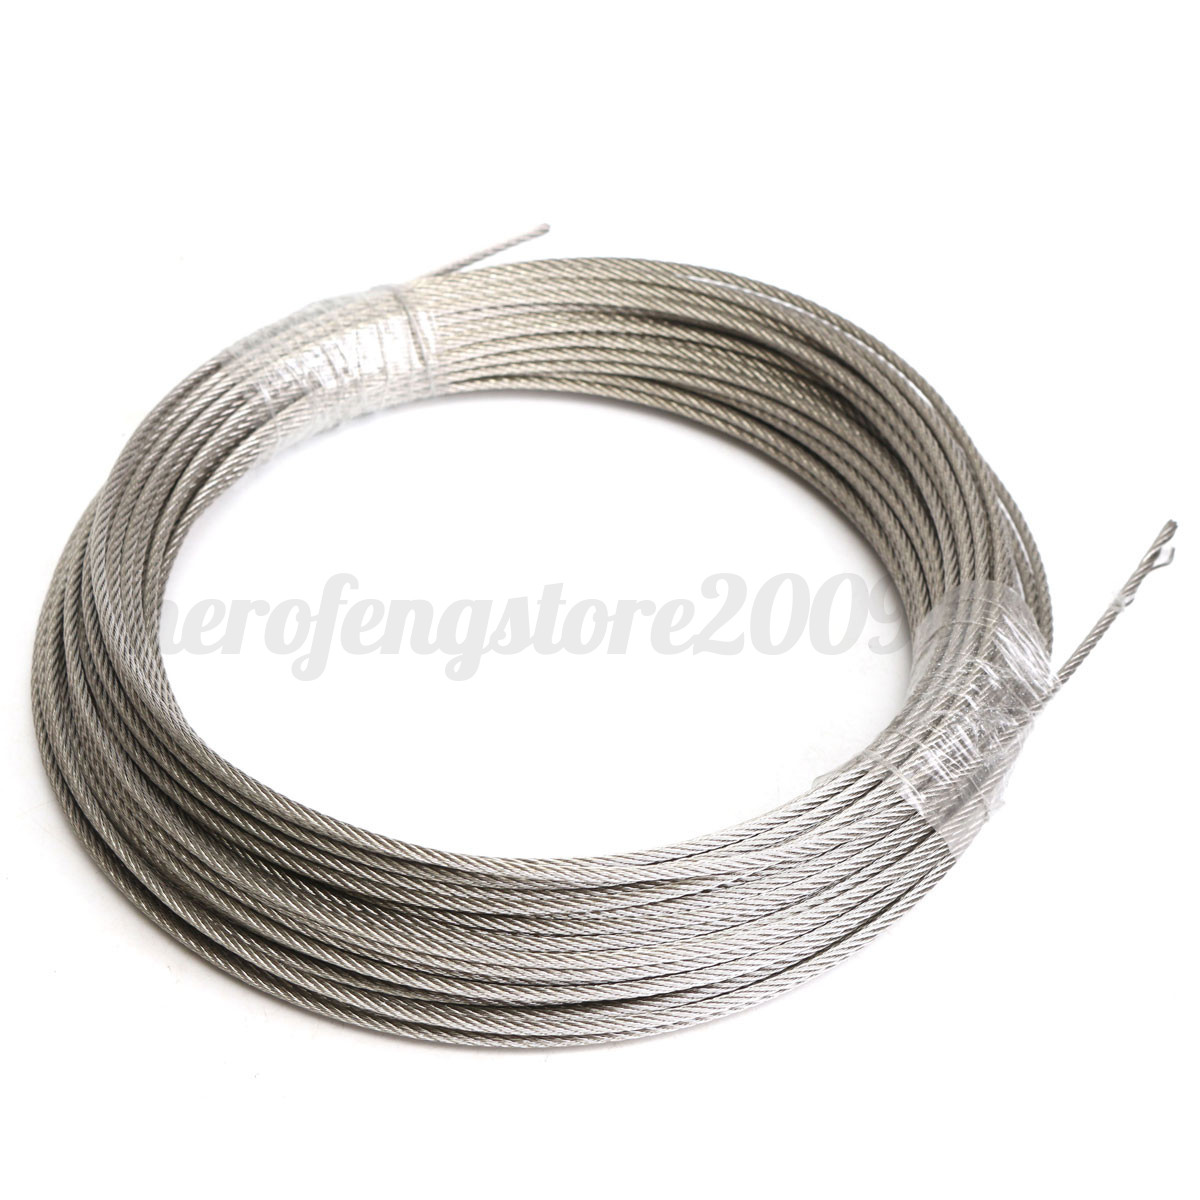 M grade stainless steel metal wire rope cable